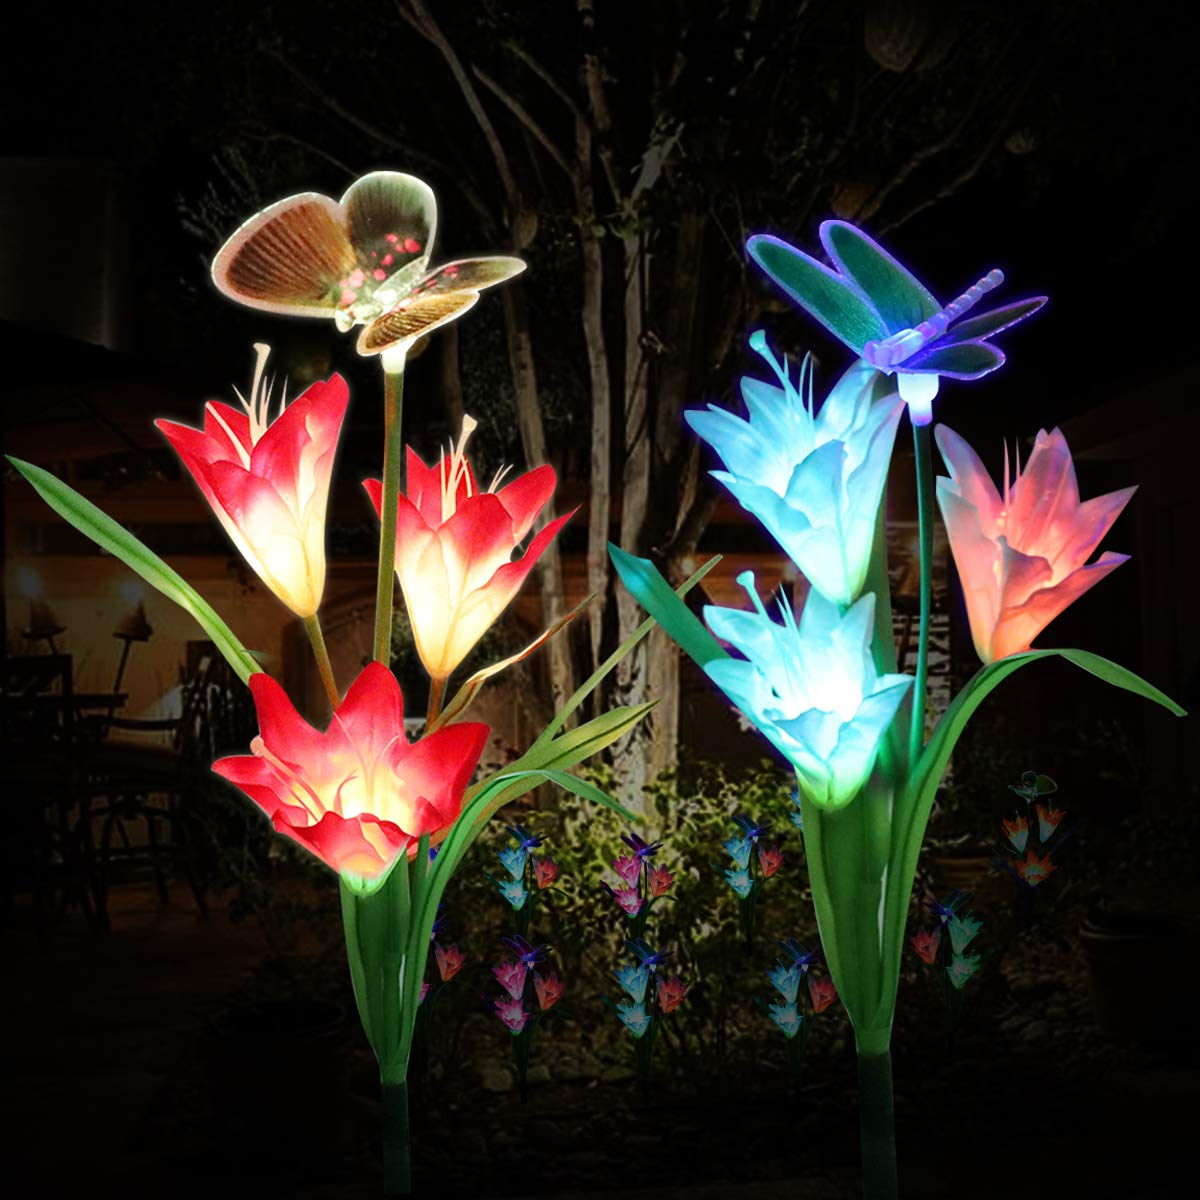 Solar Garden Lights Outdoor,WOHOME Solar Stake Lights Outdoor, Waterproof Multi Color Changing with 6 Lily Flowers,1 Butterfly,1 Dragonfly,Solar LED Decorative Lights for Garden,Patio,Backyard